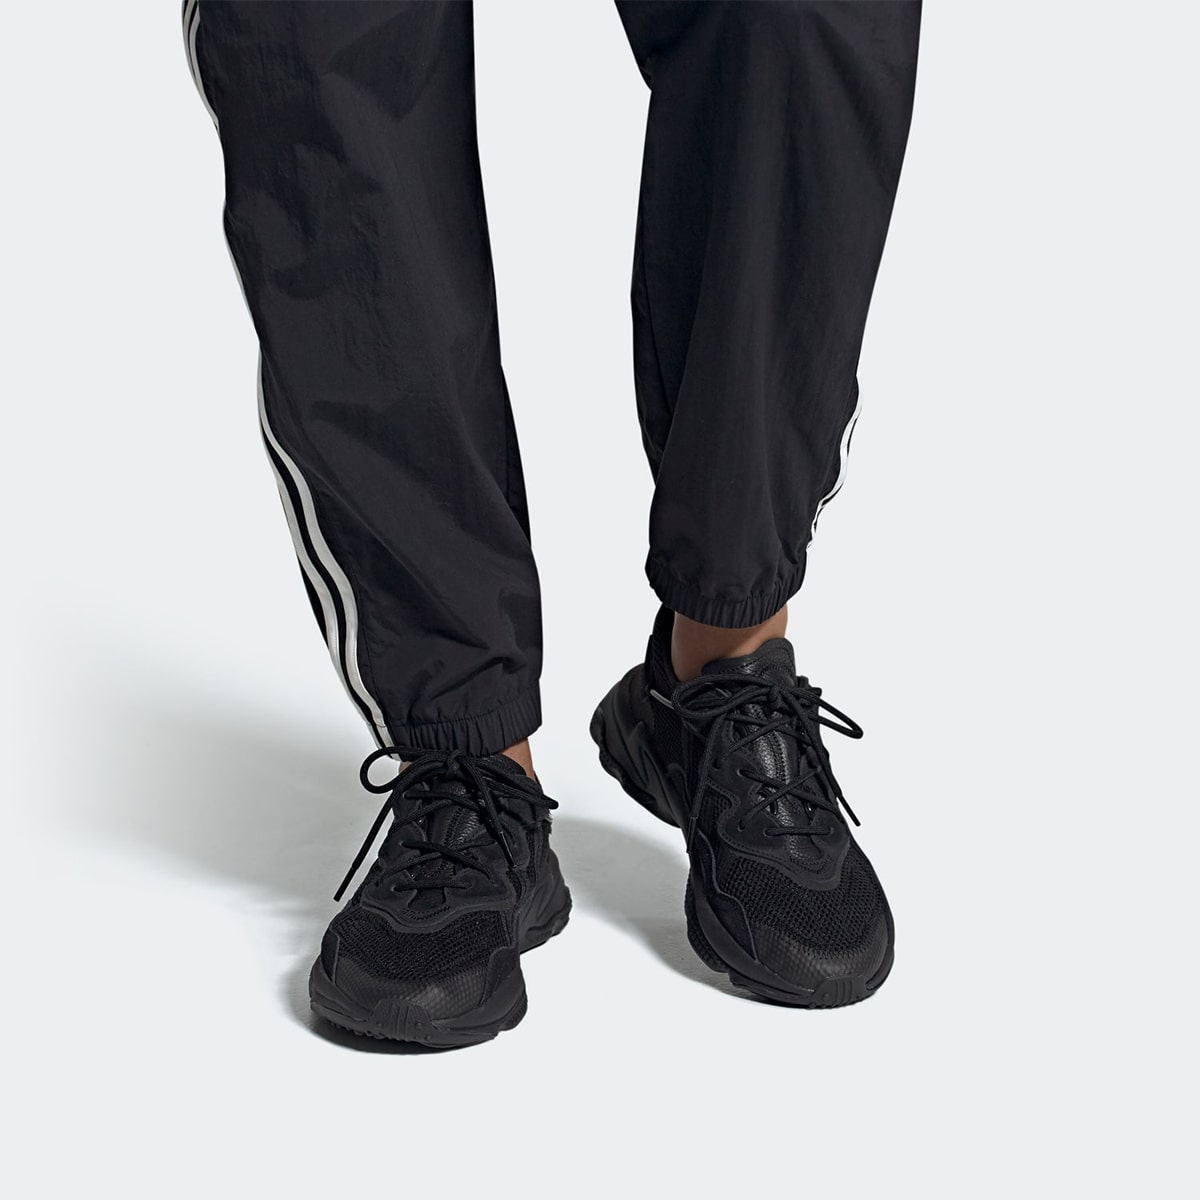 The adidas Ozweego Arrives in Triple Black   HOUSE OF HEAT